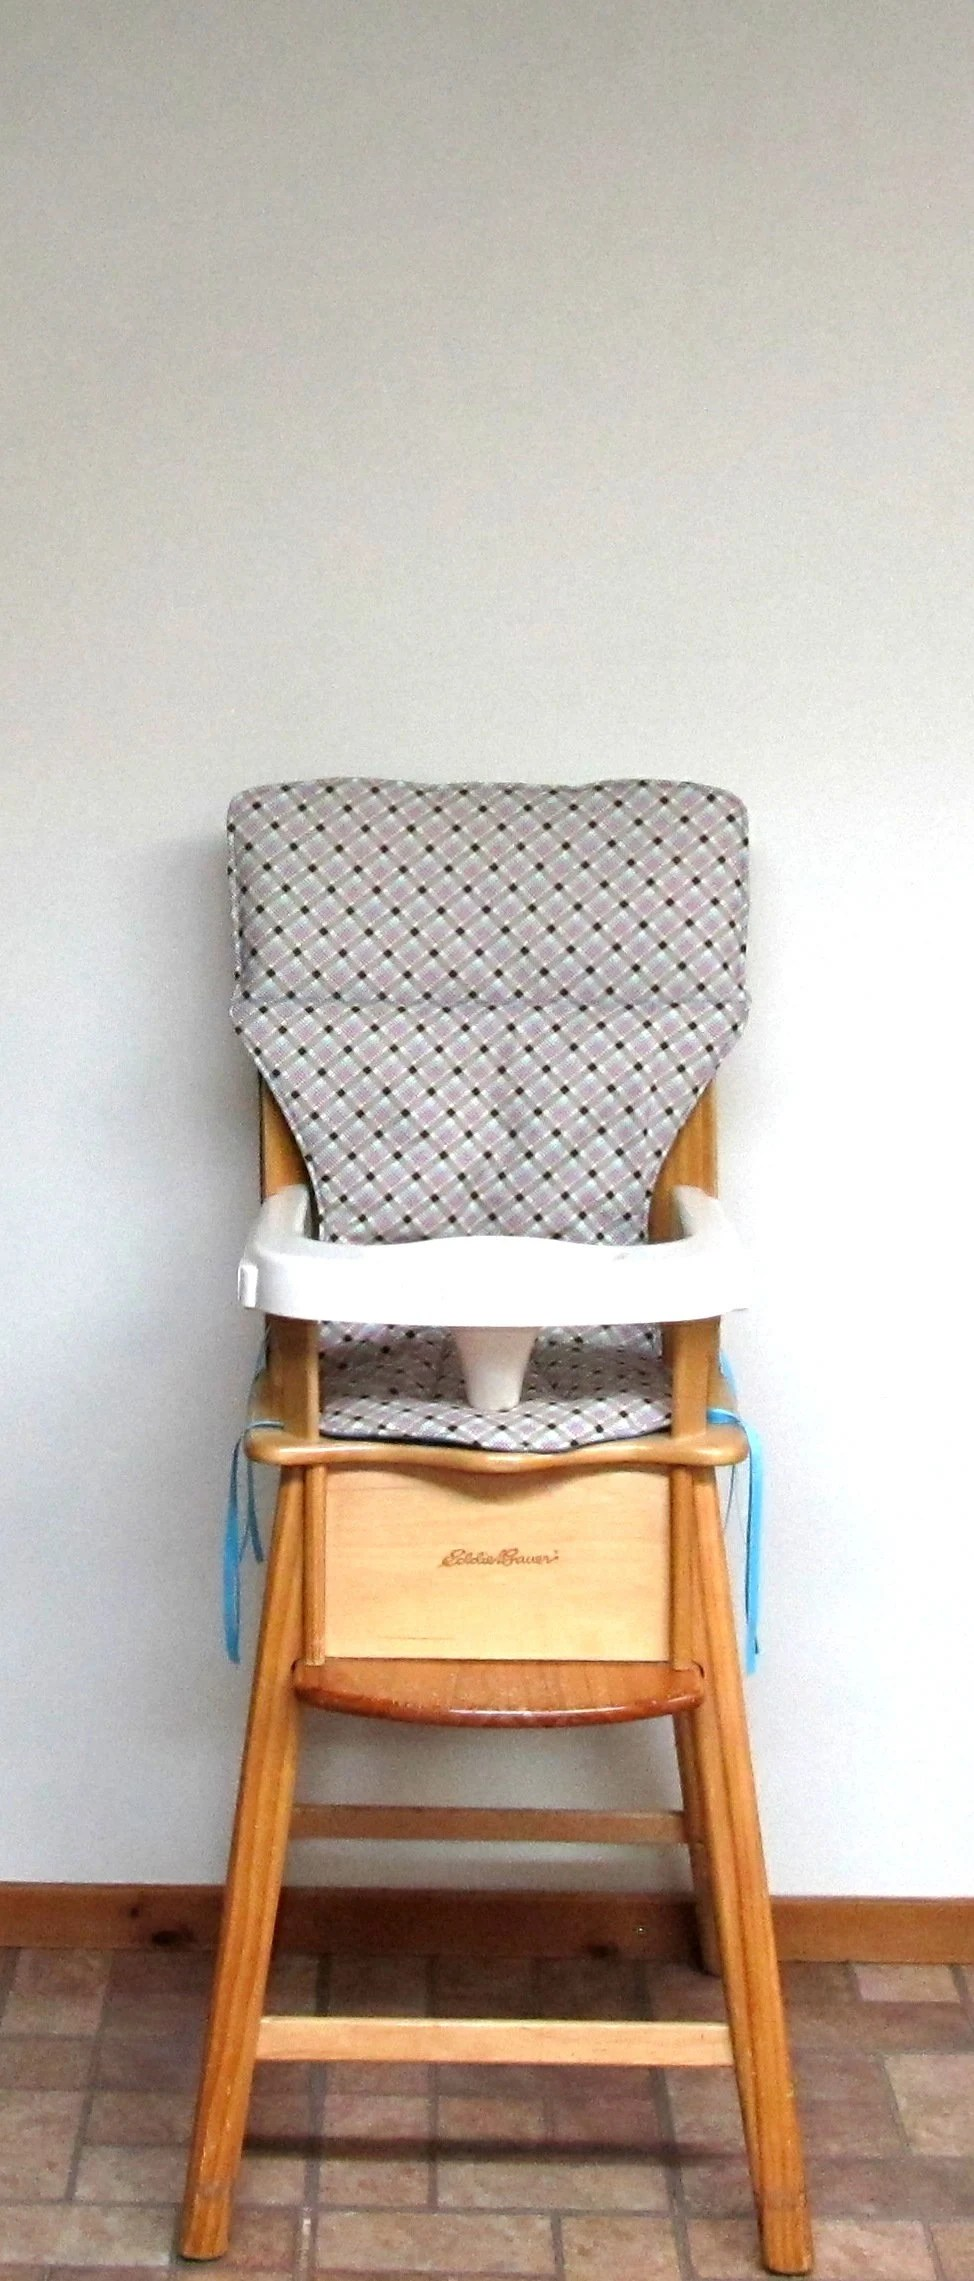 Wooden High Chairs For Babies Eddie Bauer Wooden High Chair Replacement Pad Chair Cushion Baby Accessory A Girly Plaid Child Feeding Chair Pad Protector